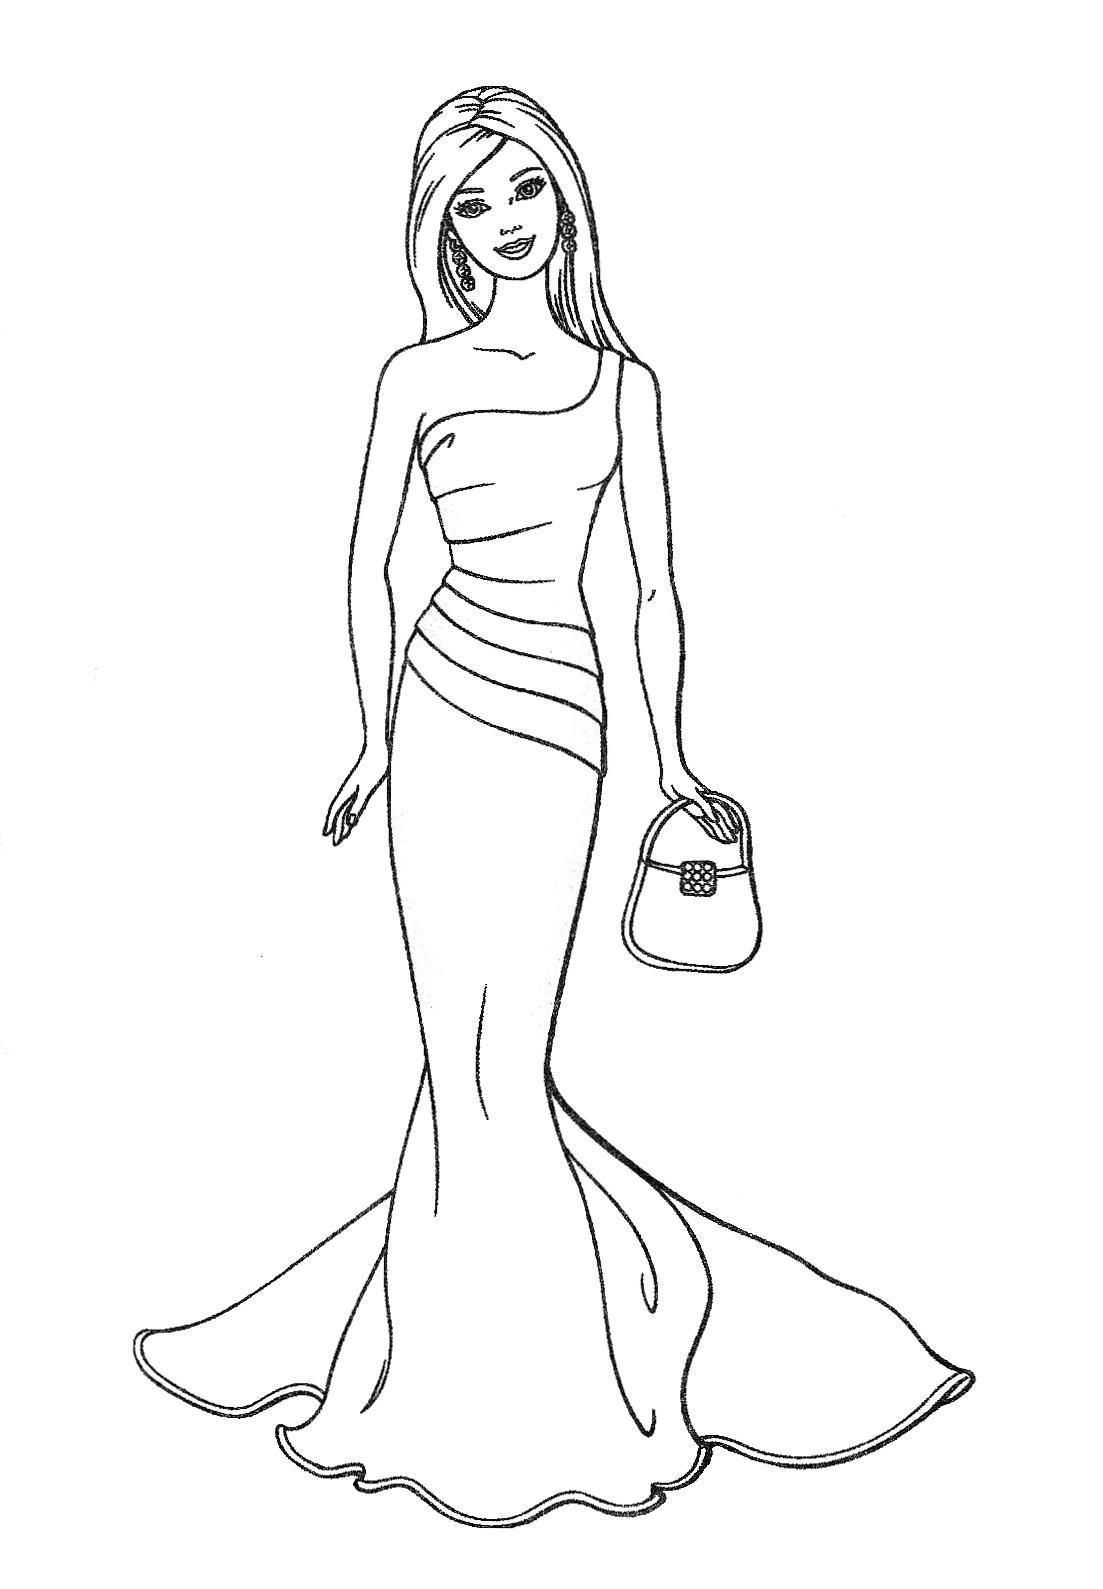 Free Printable Barbie Coloring Pages, Activity Sheets, Paper Crafts - Free Printable Barbie Coloring Pages